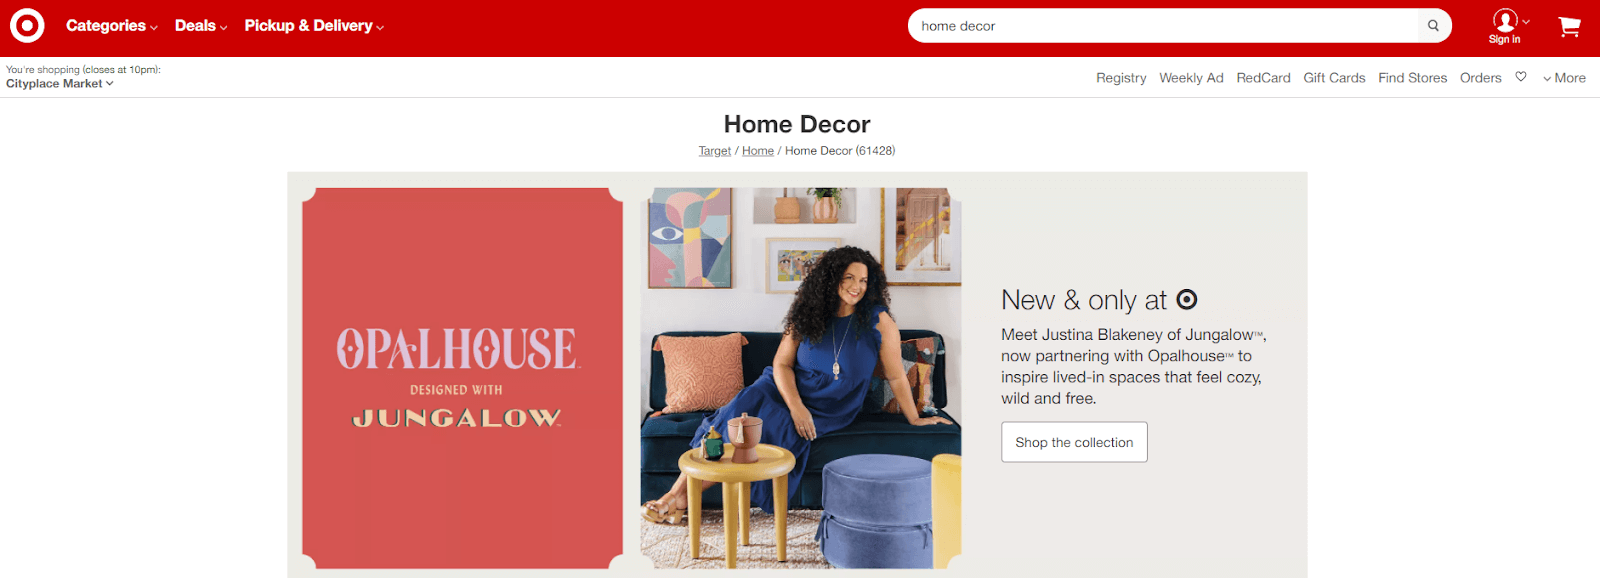 Target Home Decor Products